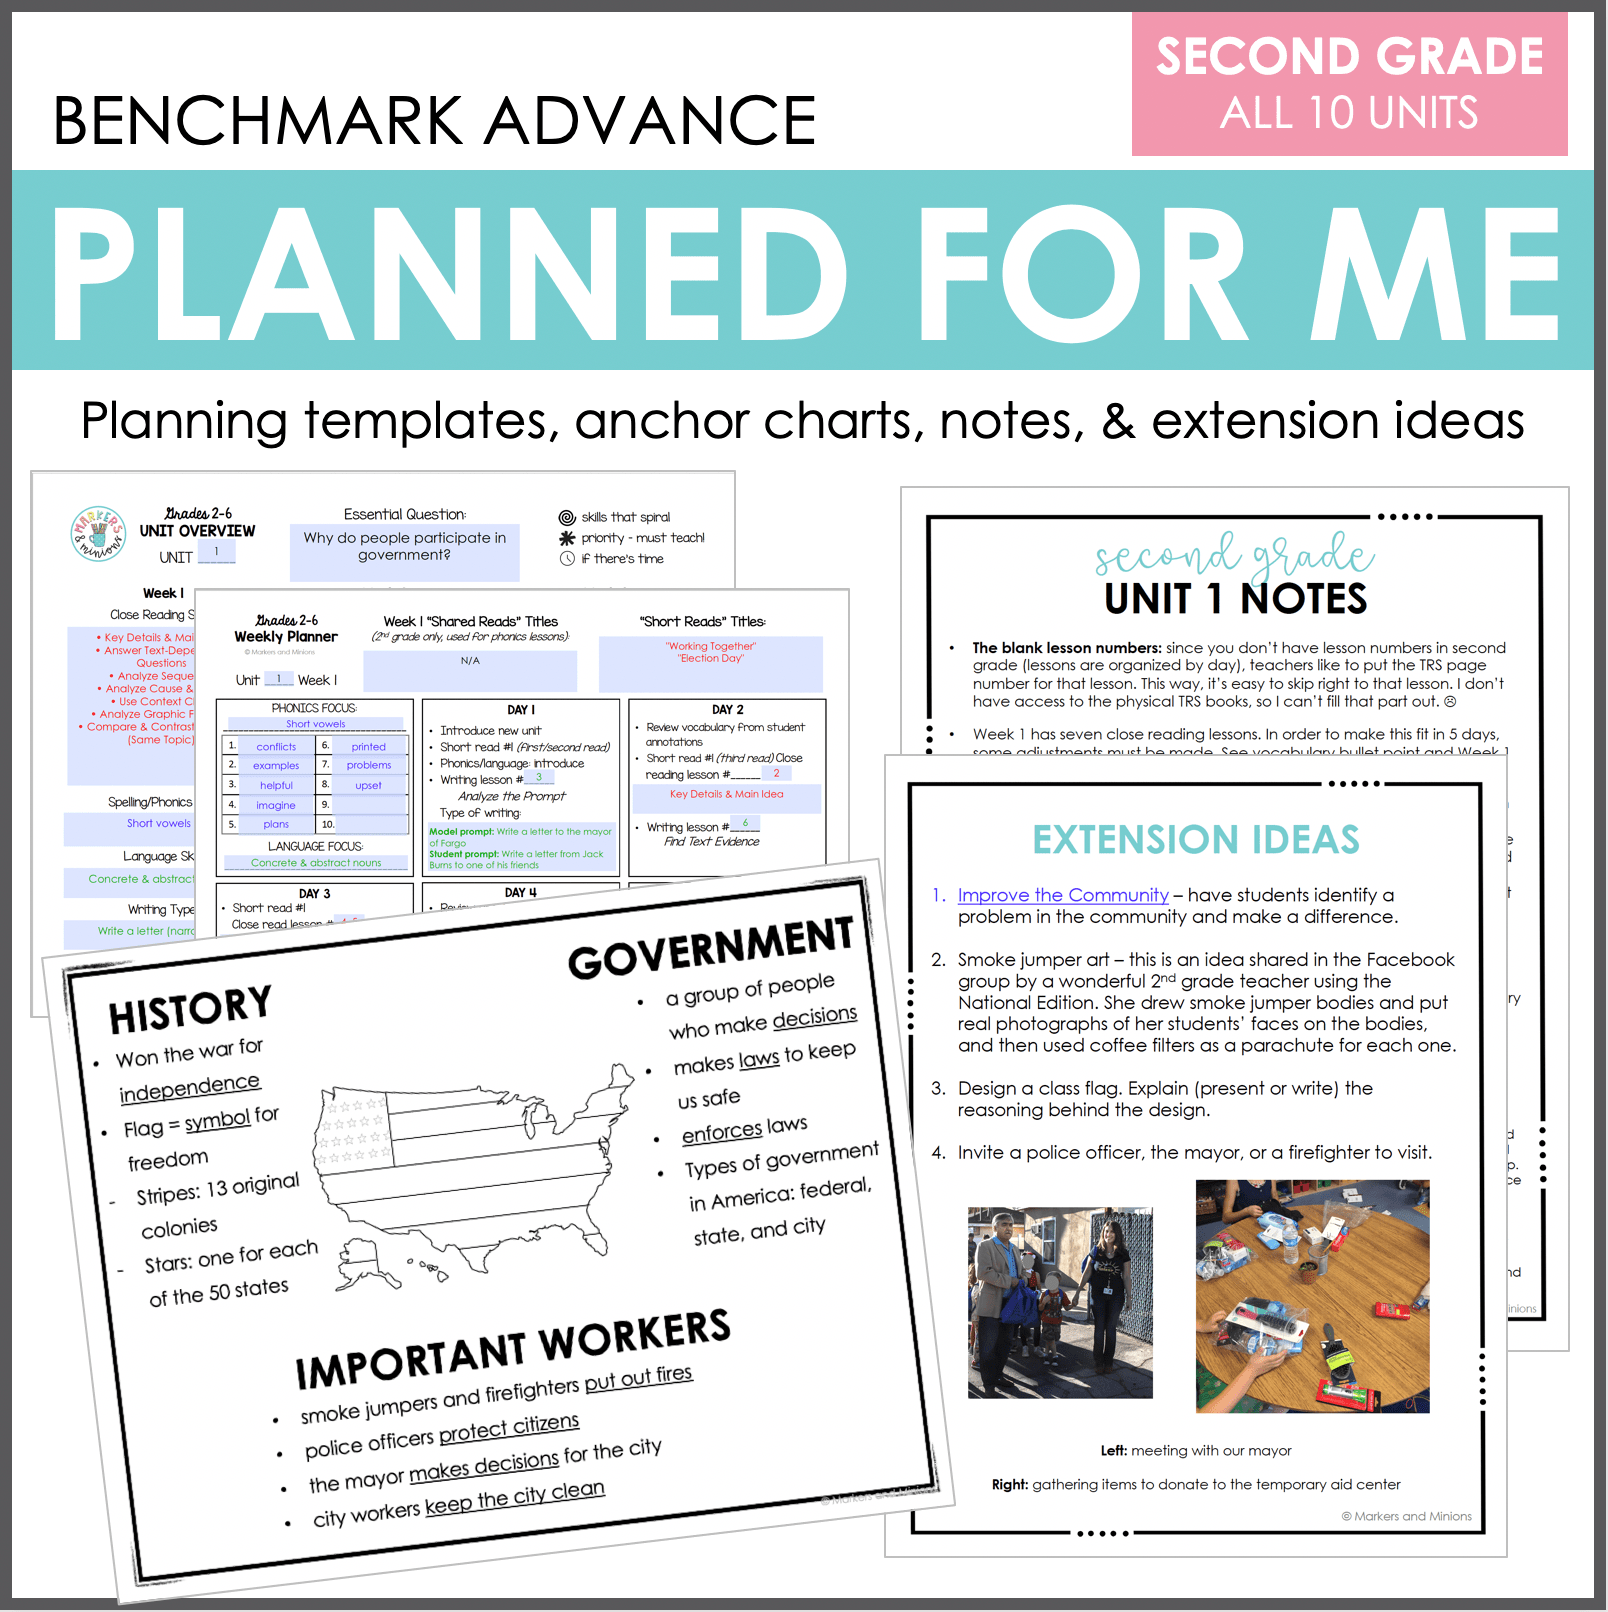 Photo of Planned for Me: Second Grade (Benchmark Advance) – Markers and Minions